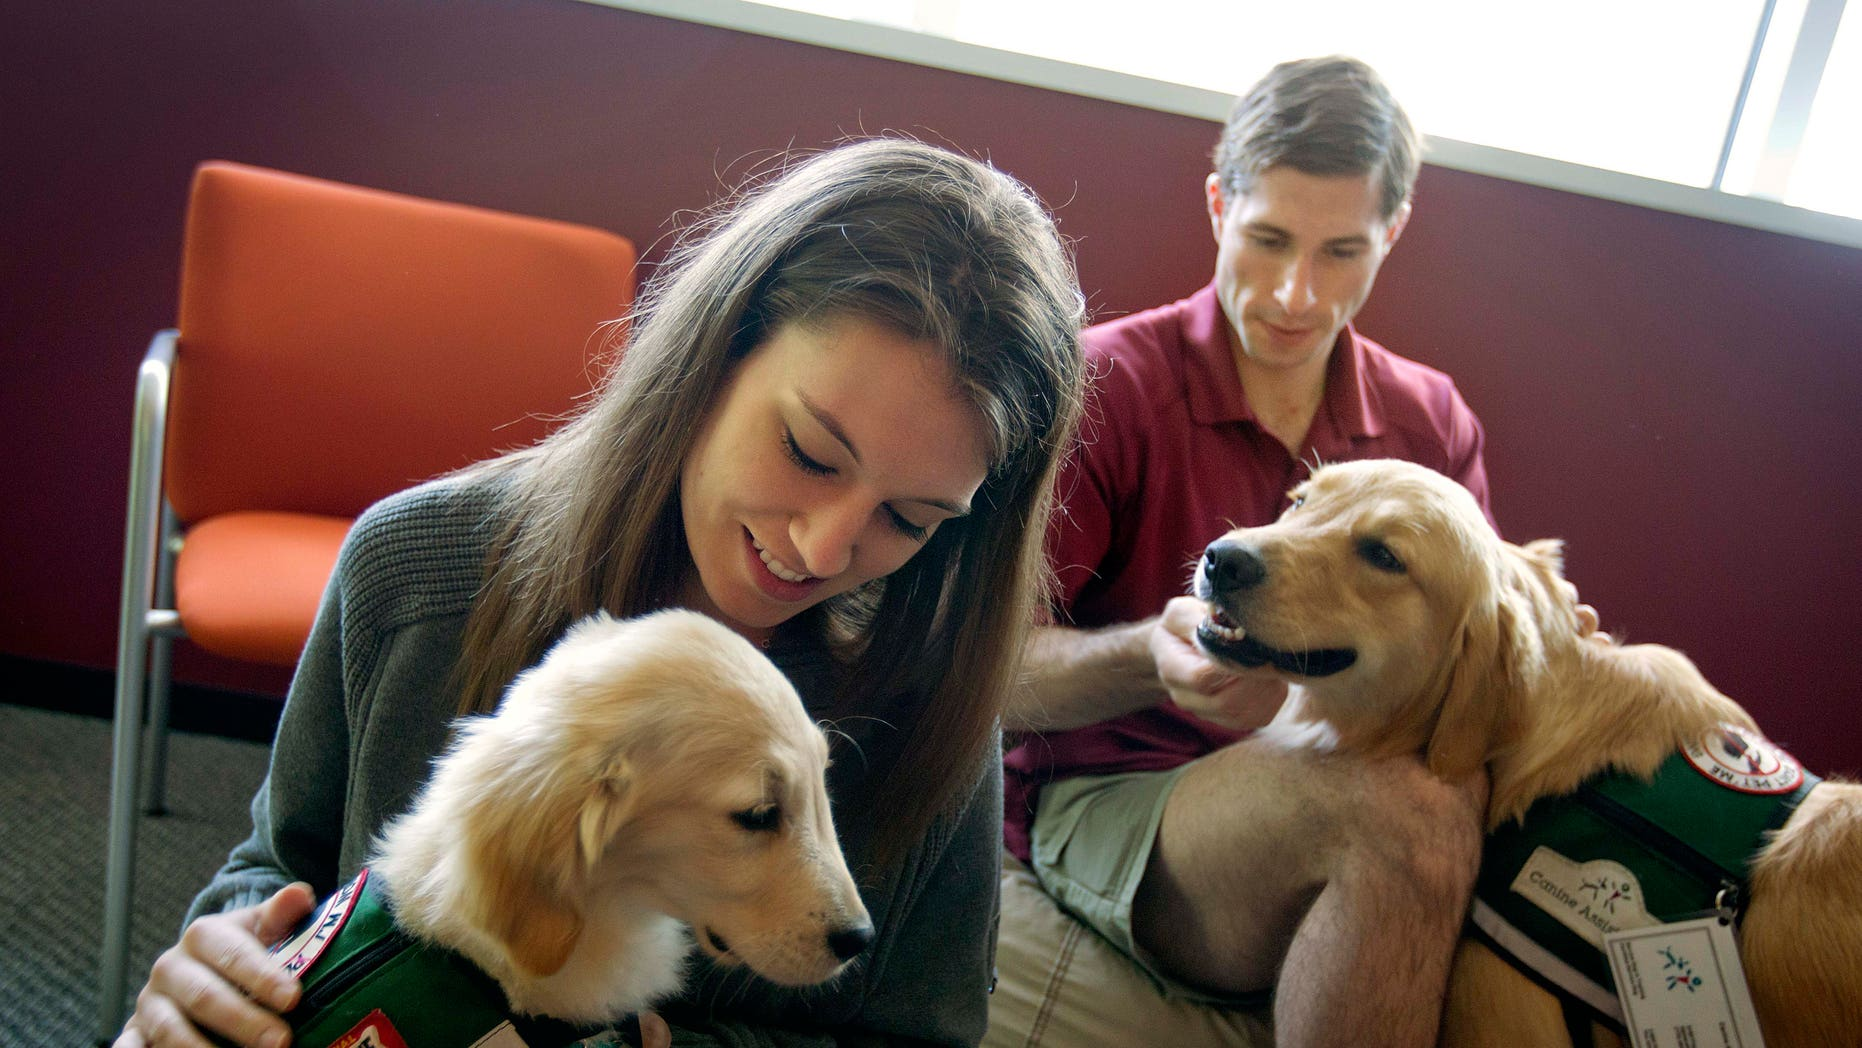 May 2, 2012: In this photo, law students Josh Richey, 22, right, and Lindsay Stewart, 26, play with Hooch, a 19-month-old golden retriever, right, and Stanley, a 4-month-old golden retriever, in between final exams at Emory University in Atlanta.